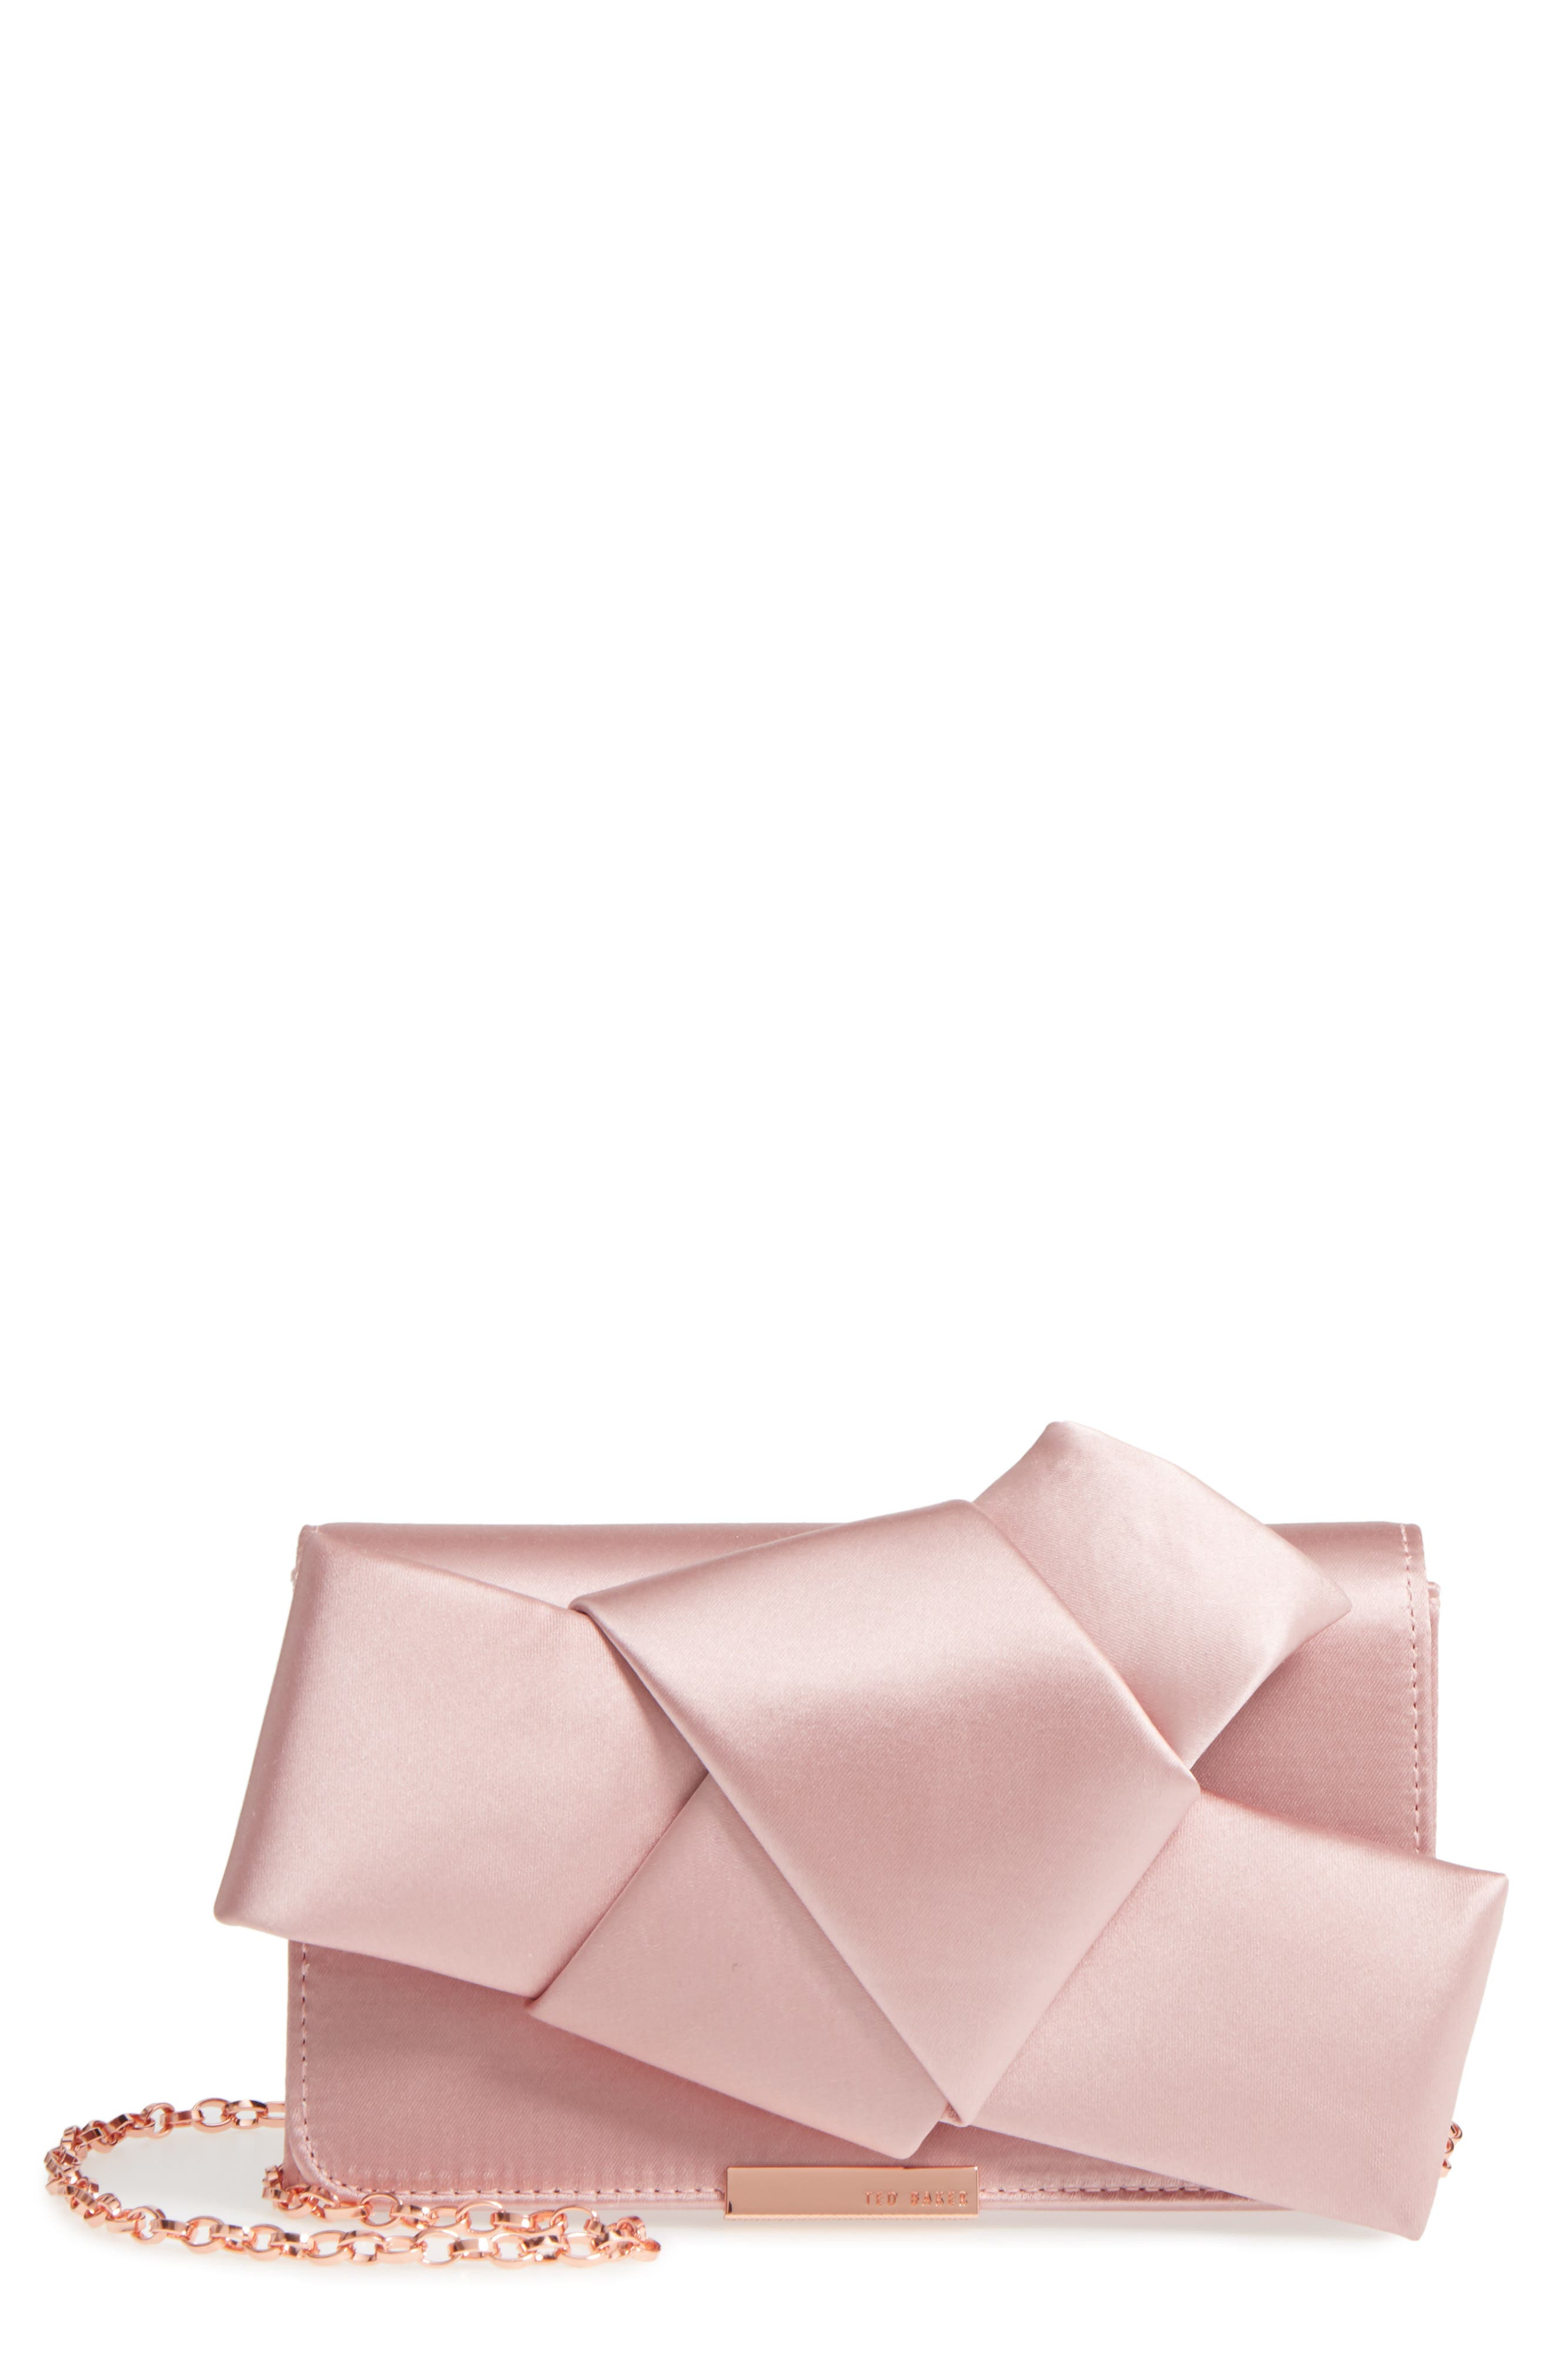 TED BAKER LONDON Fefee Satin Knotted Bow Clutch, Main, color, LIGHT PINK